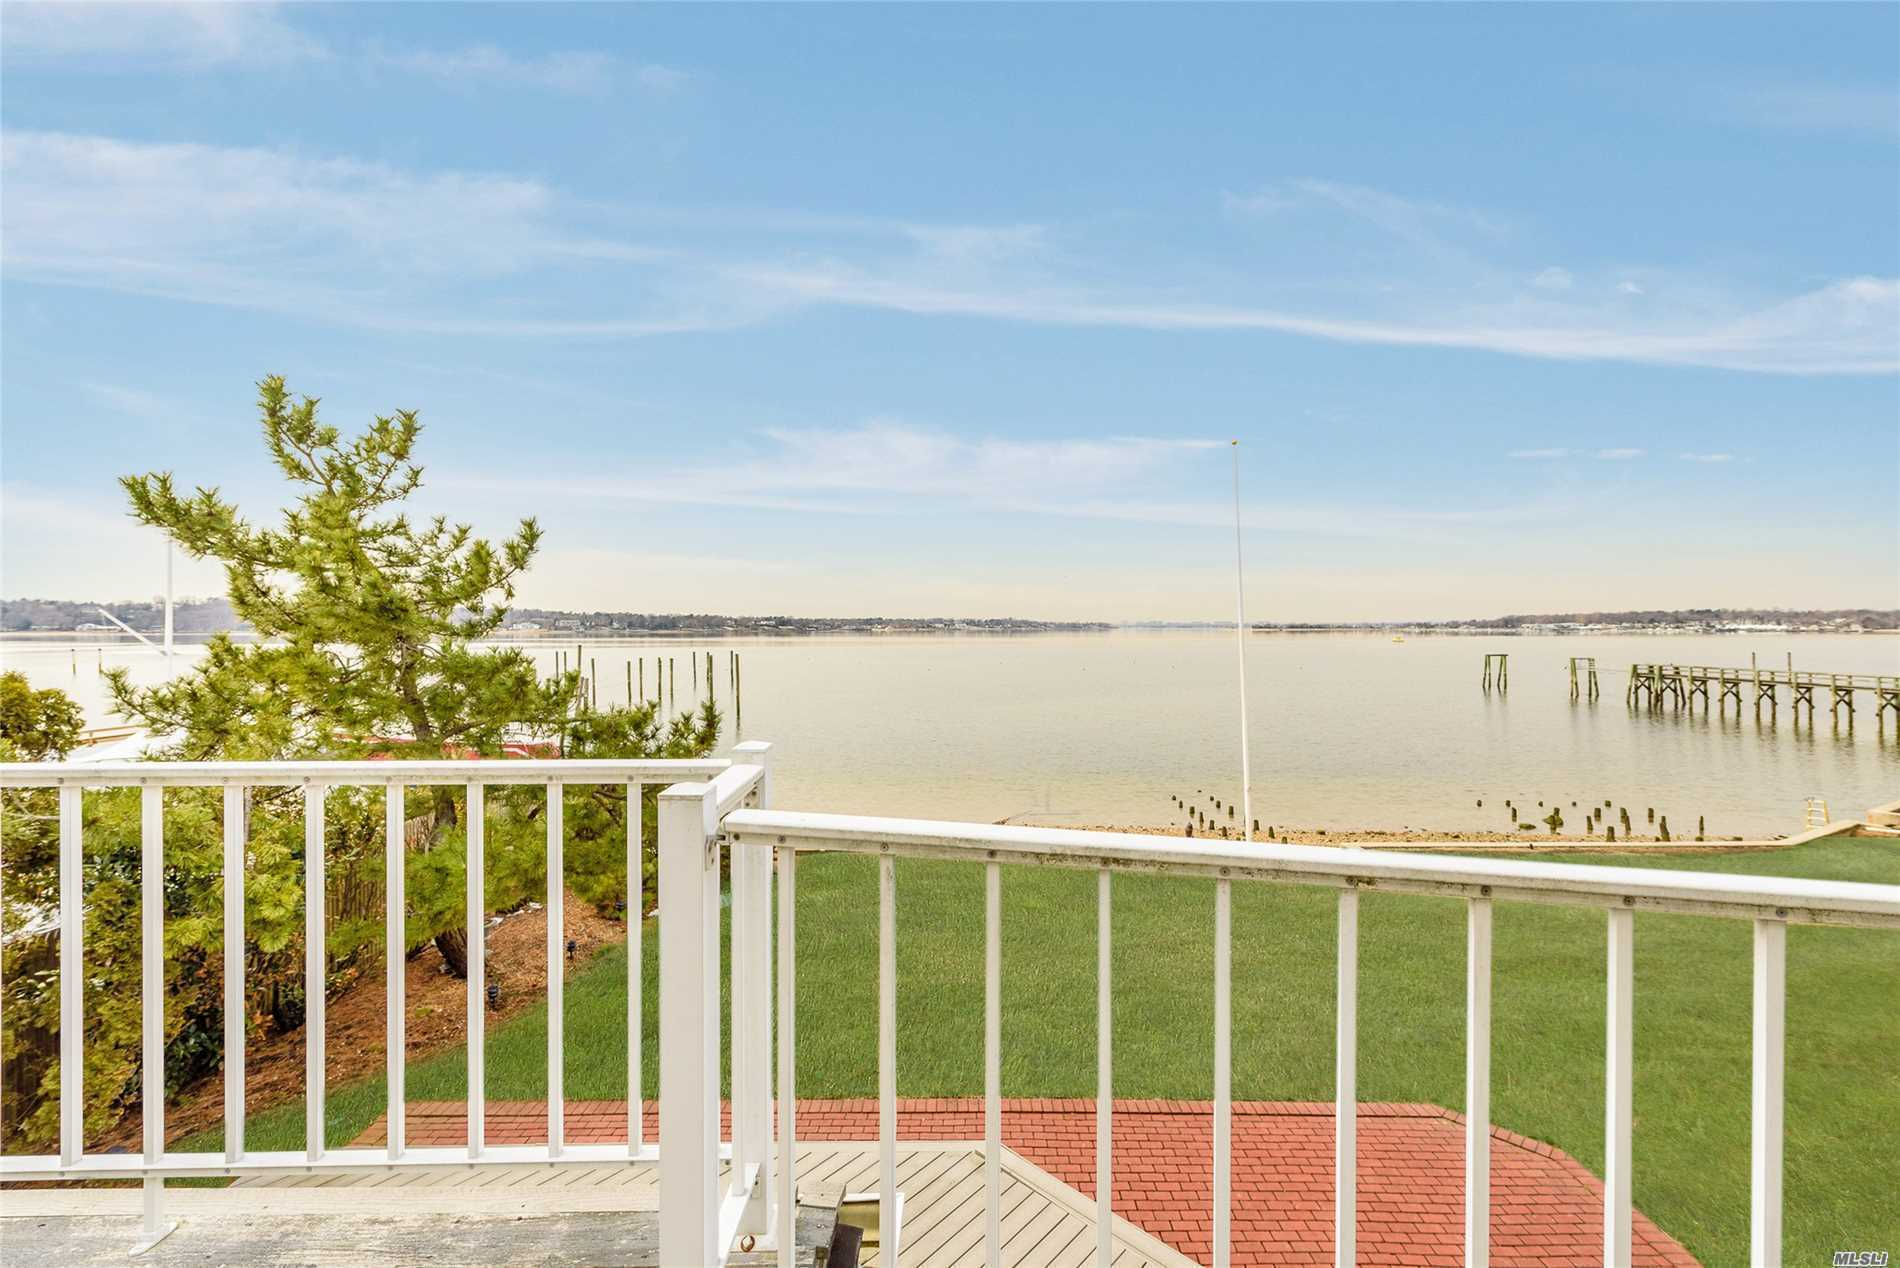 Spectacular Remote Waterfront in Port Washington For $2, 299, 000. Situated on a Private Road in a Cul De Sac, this Home has Jaw-Dropping Views of Manhasset Bay. Abundant Amounts of Natural Light Throughout Capitalize On Breathtaking Water Views. The 1st Floor Offers Multiple Living Spaces Designed For Intimate Gatherings & Entertaining. The Master & Junior Master Suites Include Sliding Doors To Your Own Private Waterfront Deck That Will Provide Spectacular Sunrises and Sunsets Year Round.